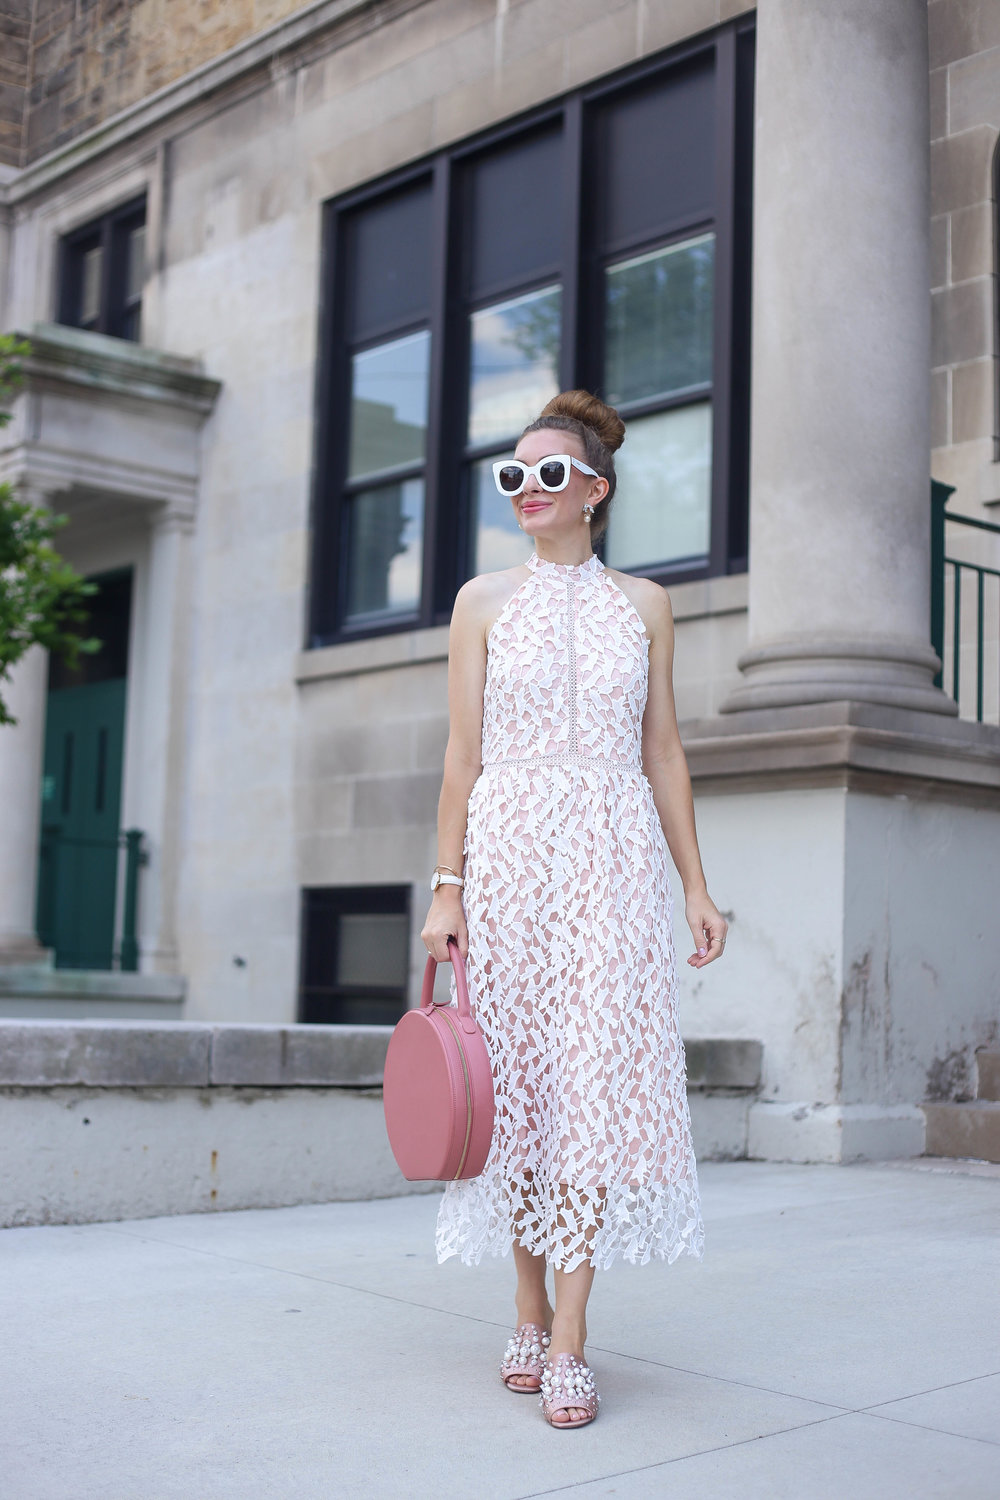 Elegant Crochet Dress- Enchanting Elegance